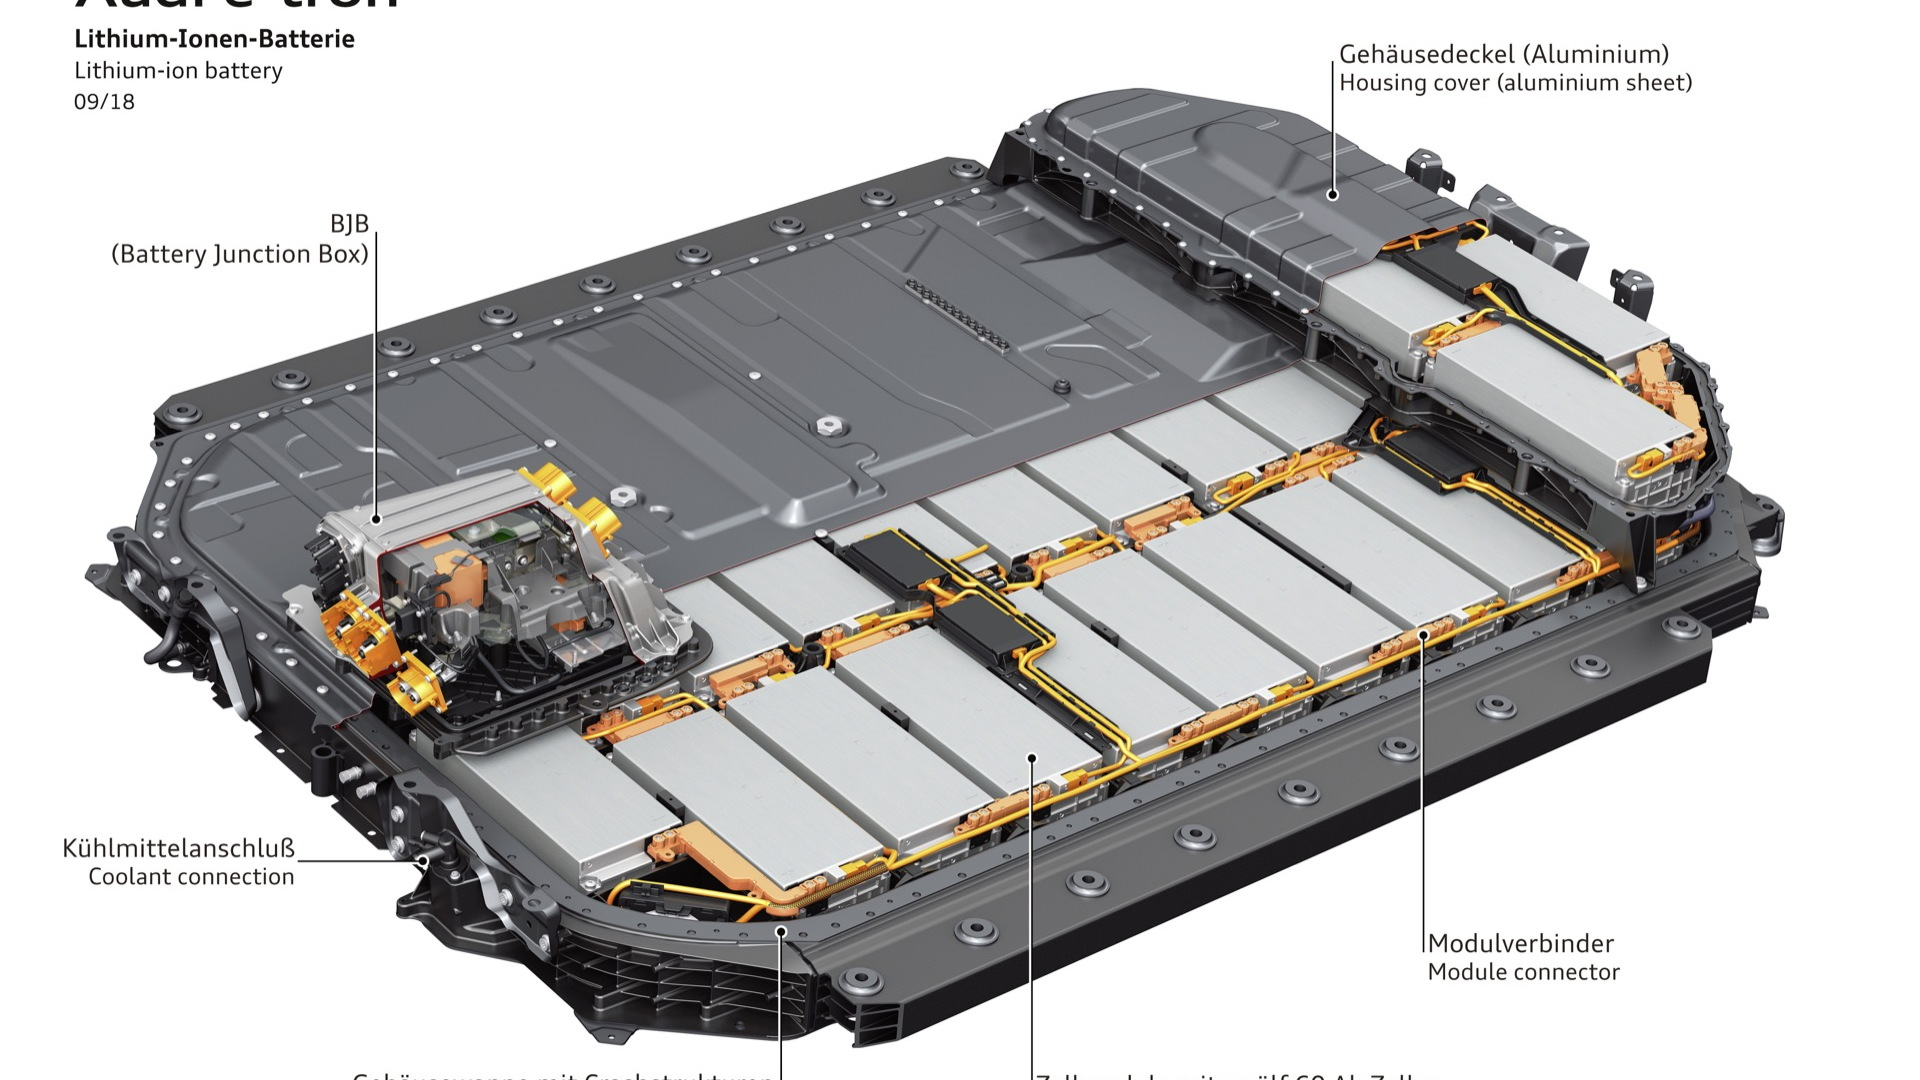 lithium batteries - Green Car Photos, News, Reviews, and